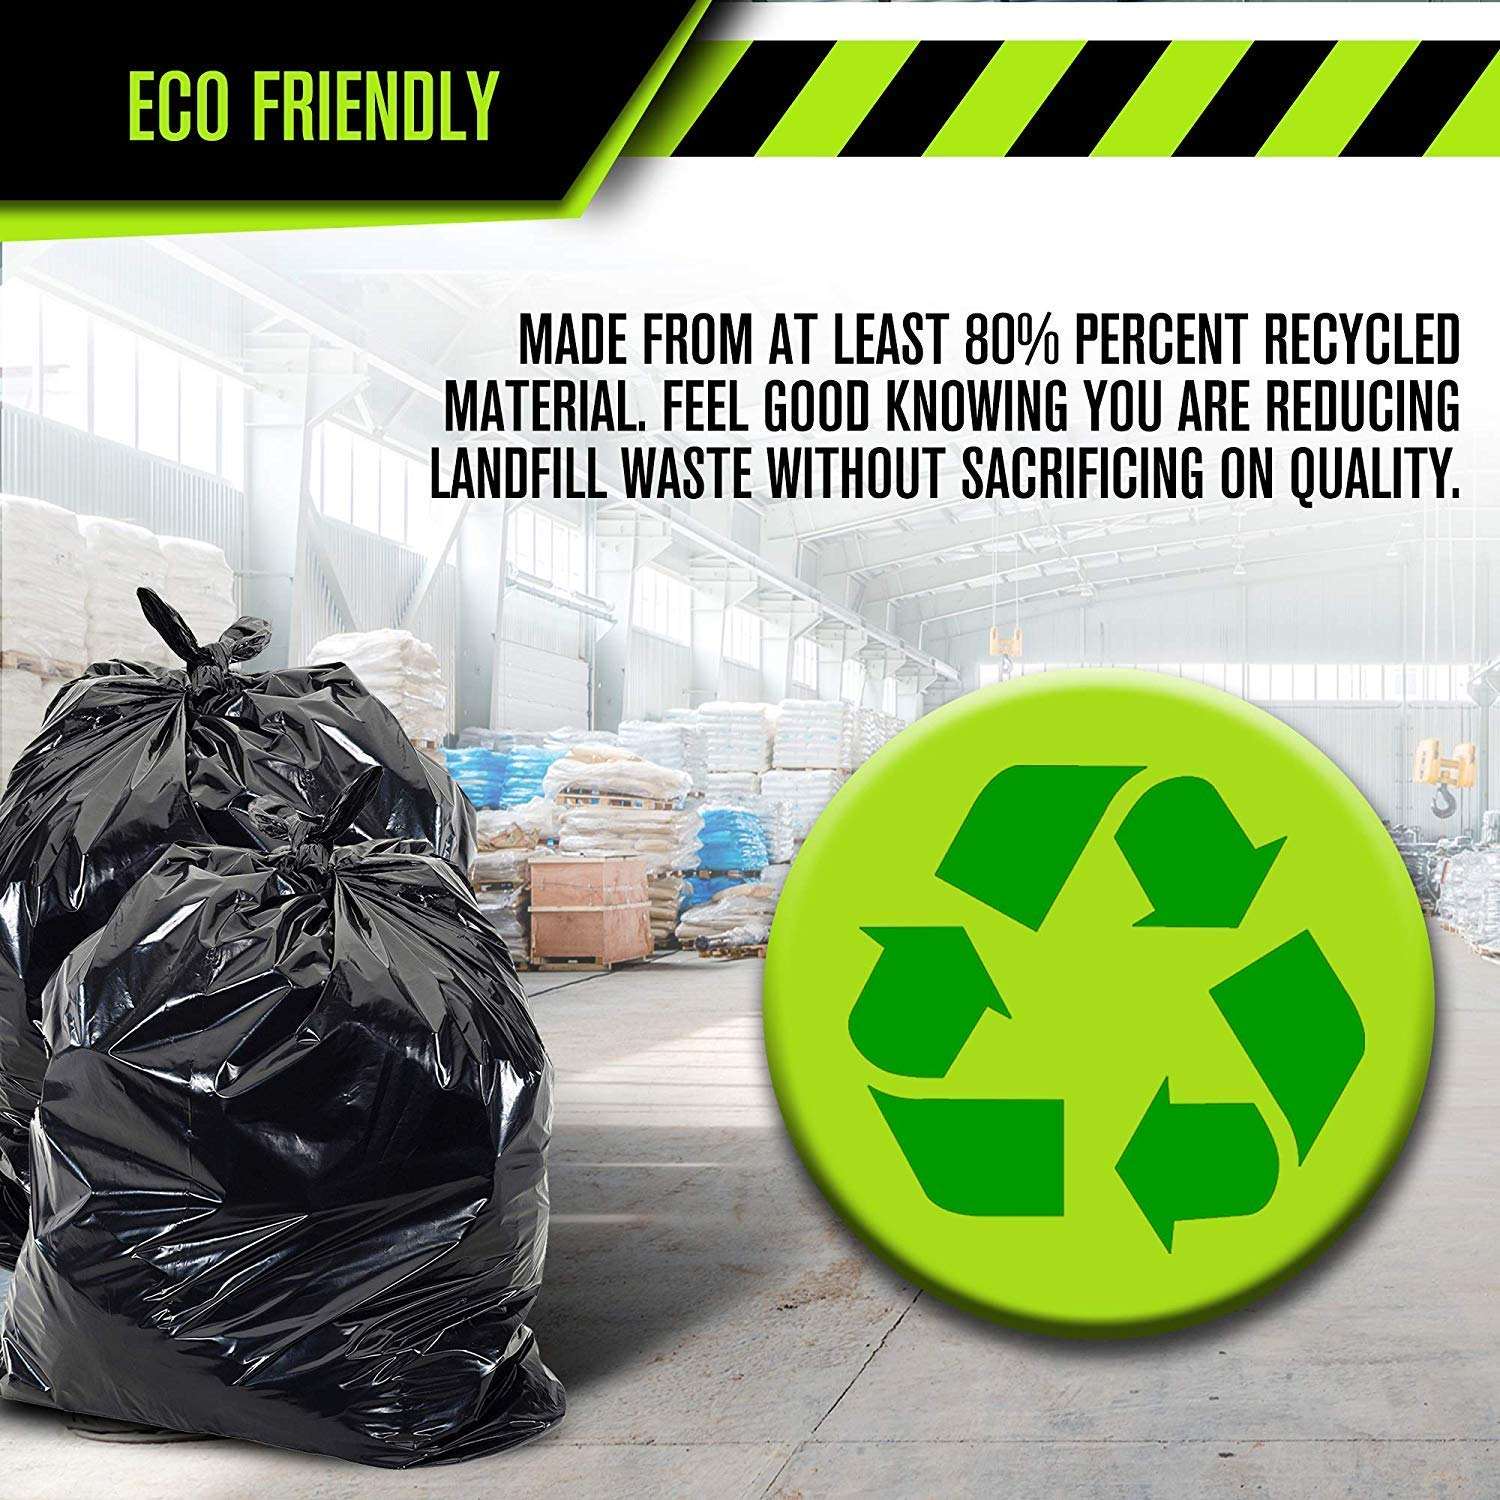 Garbage Bags for Toter 40-45 Gallon Trash Bags Heavy Duty - 33 x 48 Industrial - 2.0 MIL Thick Garage Commercial Lawn Contractors Construction Huge 100 Pack Kitchen Leaf Yard Waste